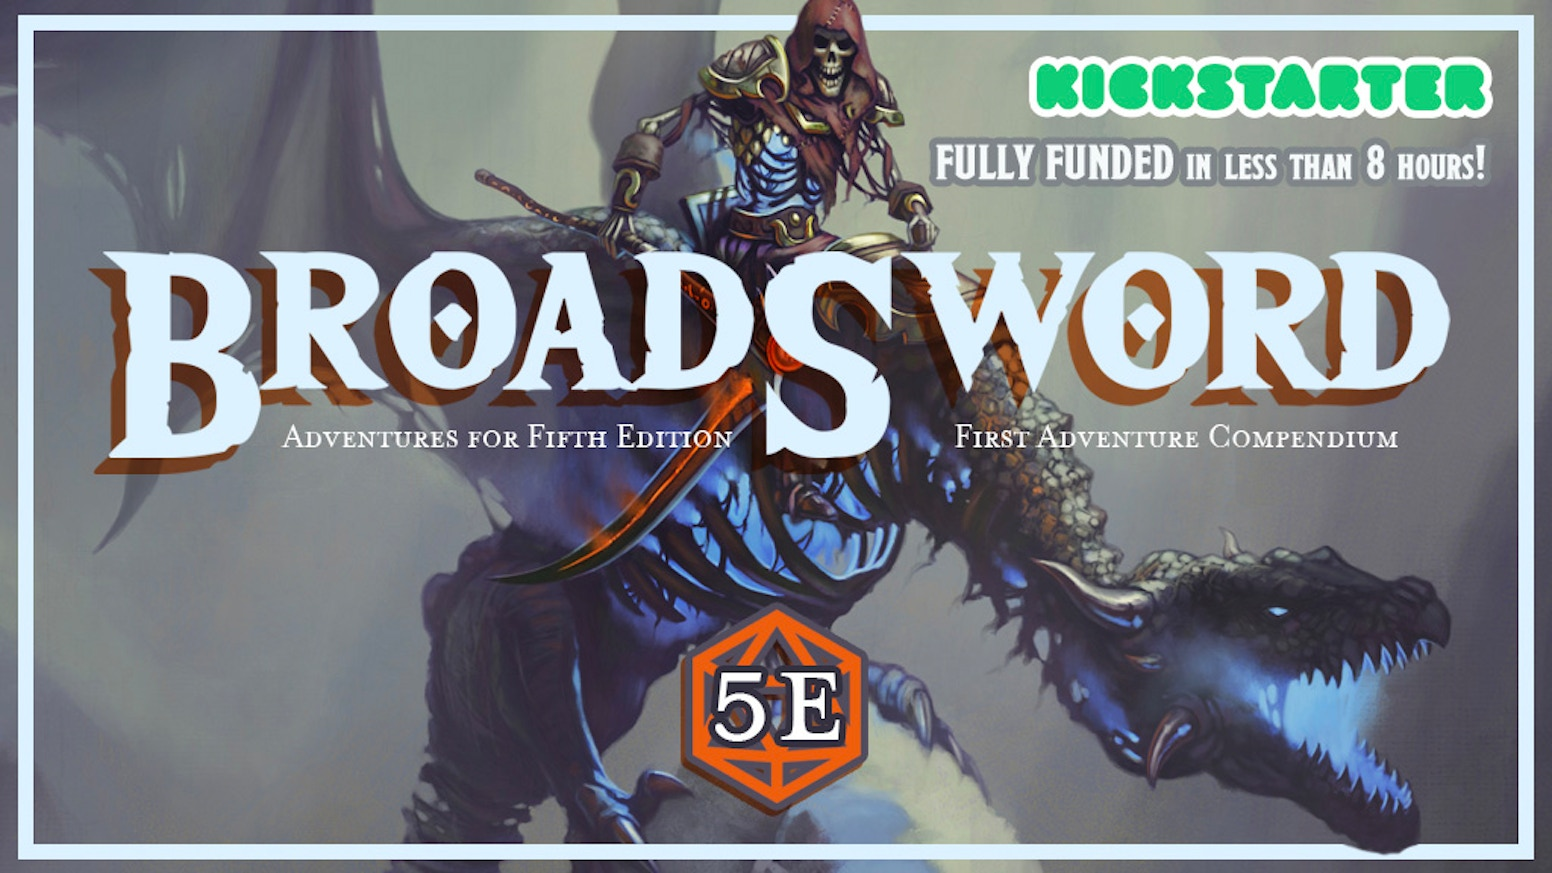 Monthly Fifth Edition adventure books from DMDave. Includes the 300-page BroadSword Compendium #1 with totally remastered adventures.